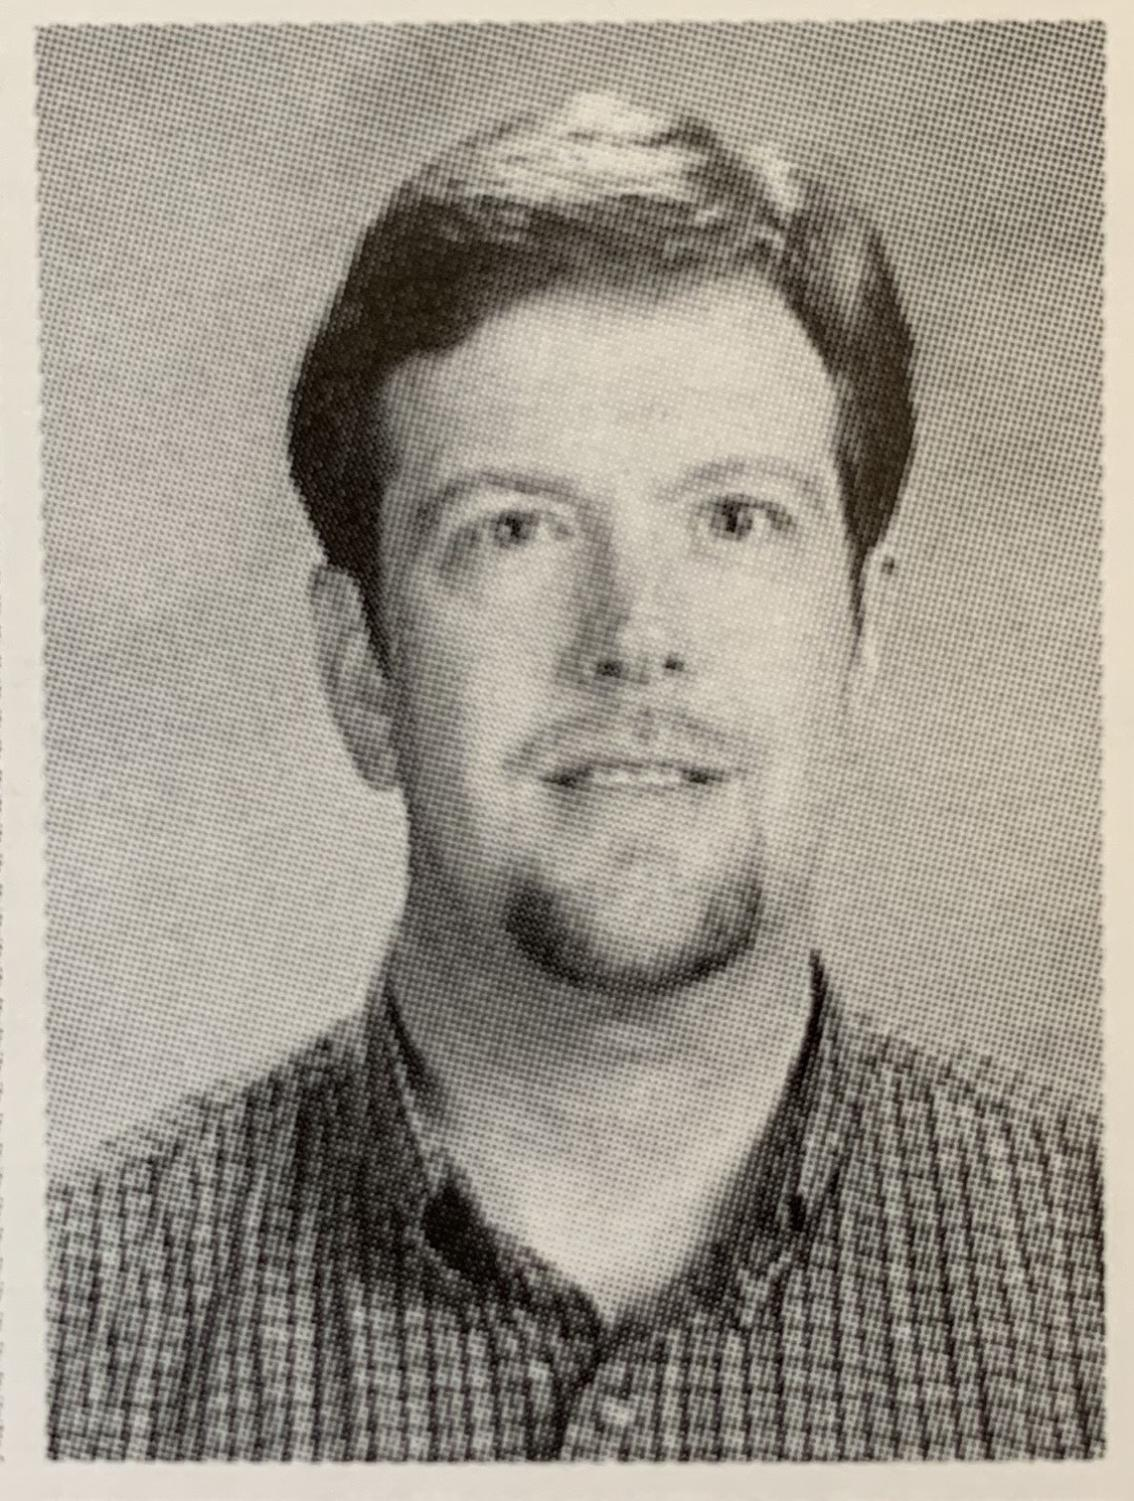 Picture of Mr. Bomgaars from the 2001 VHHS yearbook.